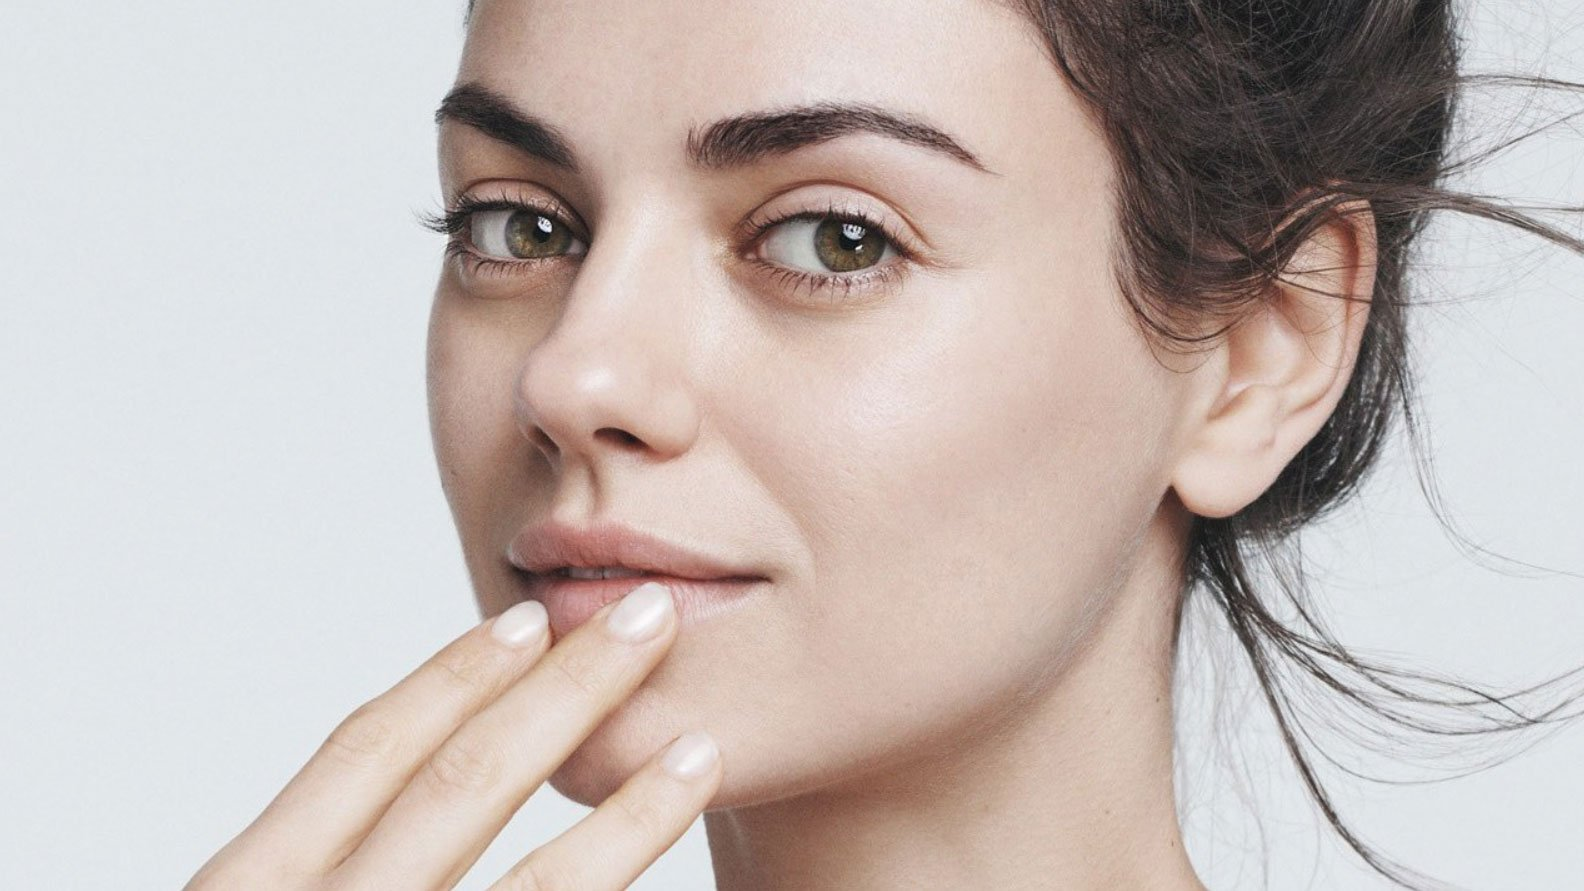 Mila Kunis beauty tips